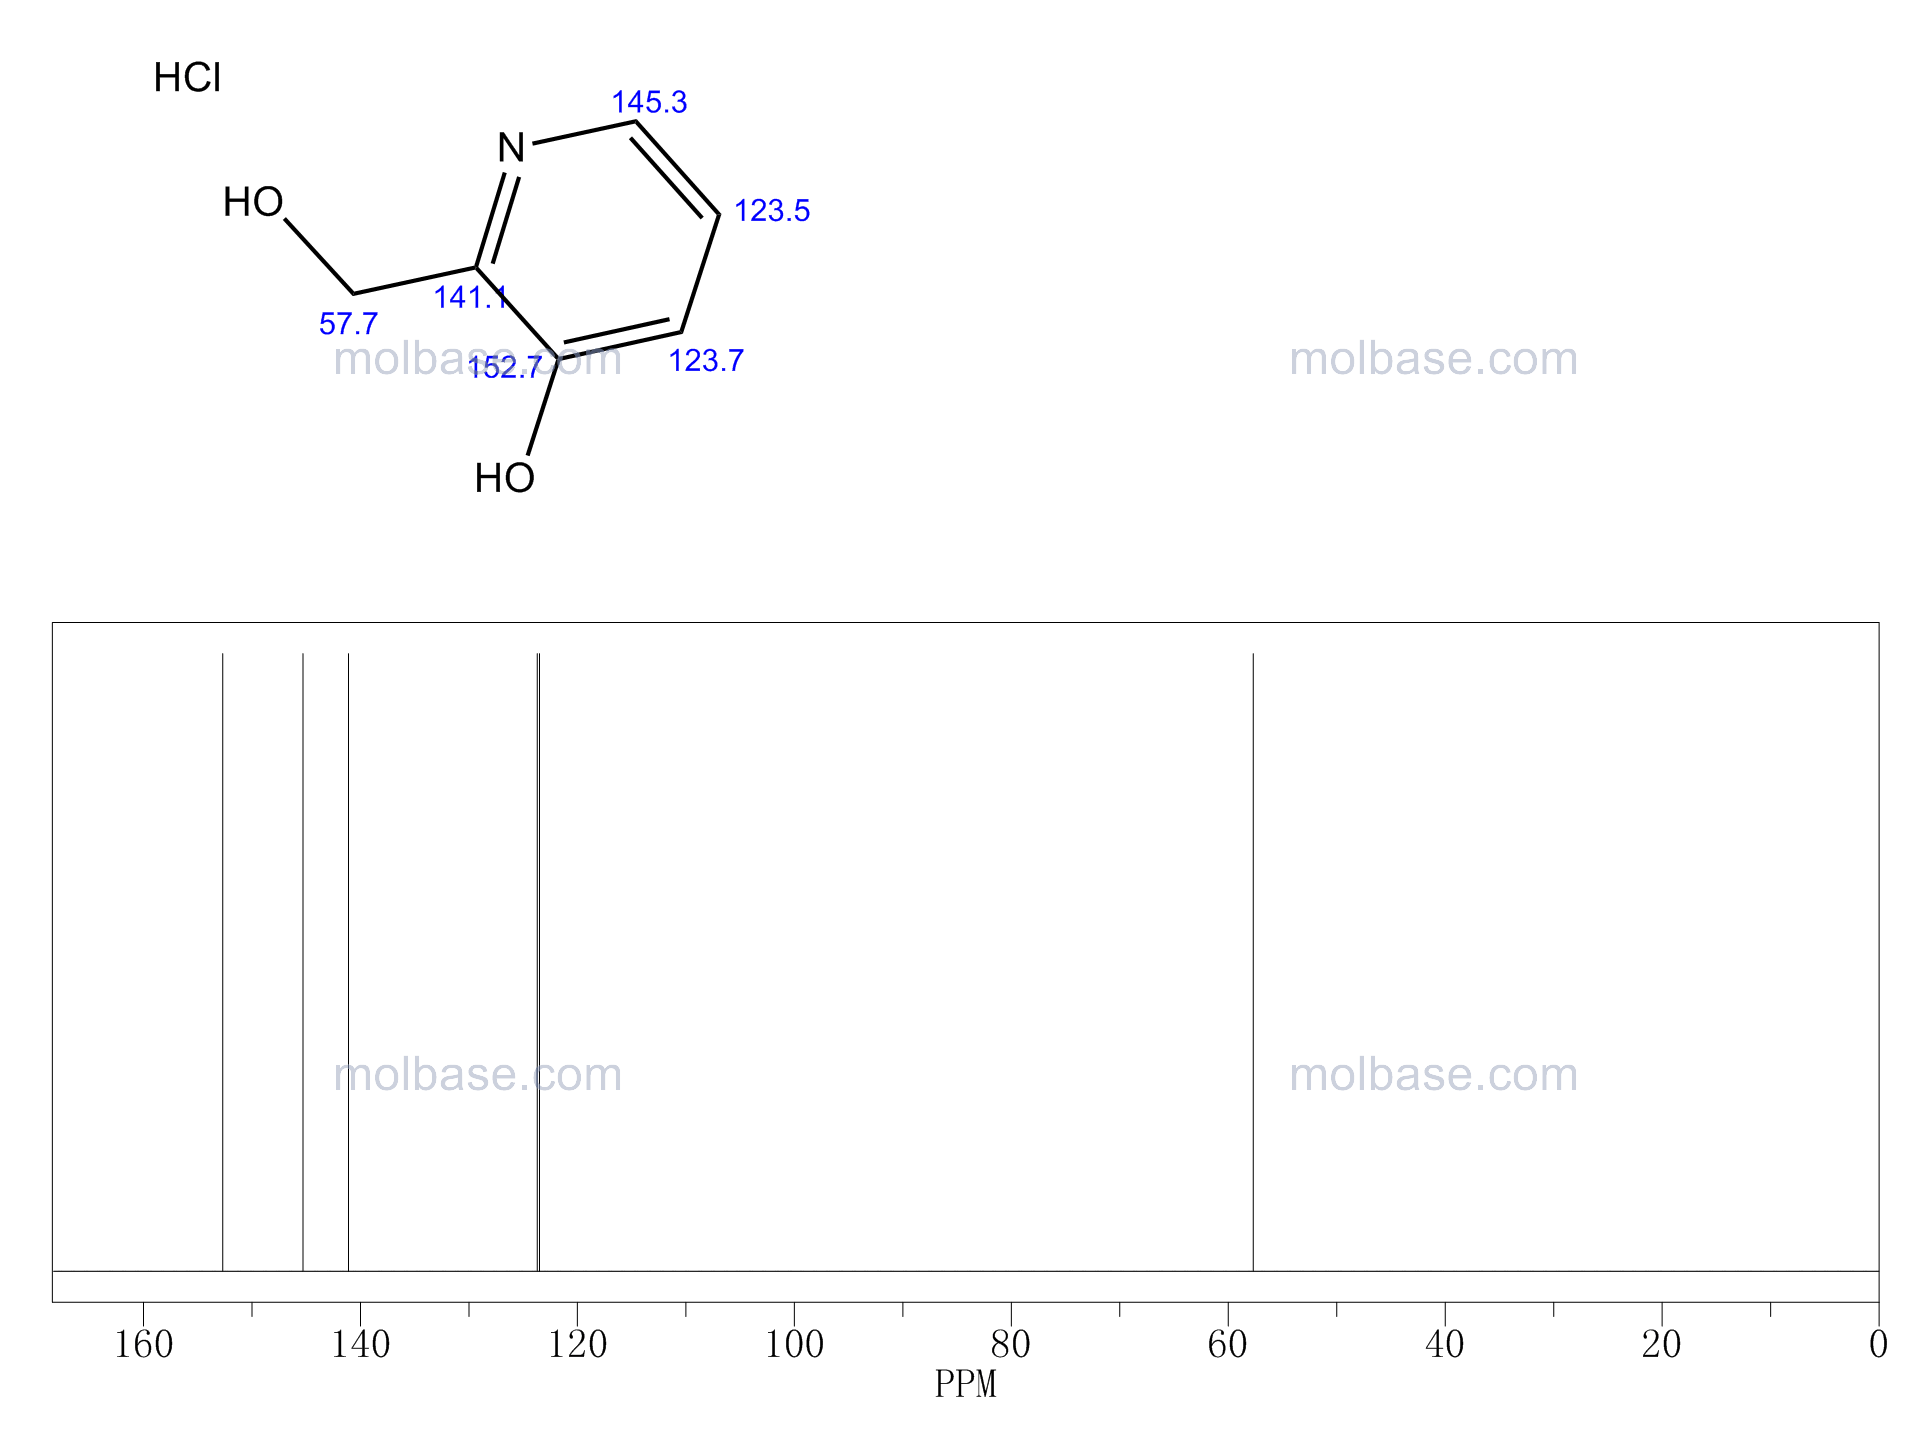 3-Hydroxy-2-pyridinemethanol hydrochloride NMR spectra analysis, Chemical CAS NO. 14173-30-9 NMR spectral analysis, 3-Hydroxy-2-pyridinemethanol hydrochloride C-NMR spectrum